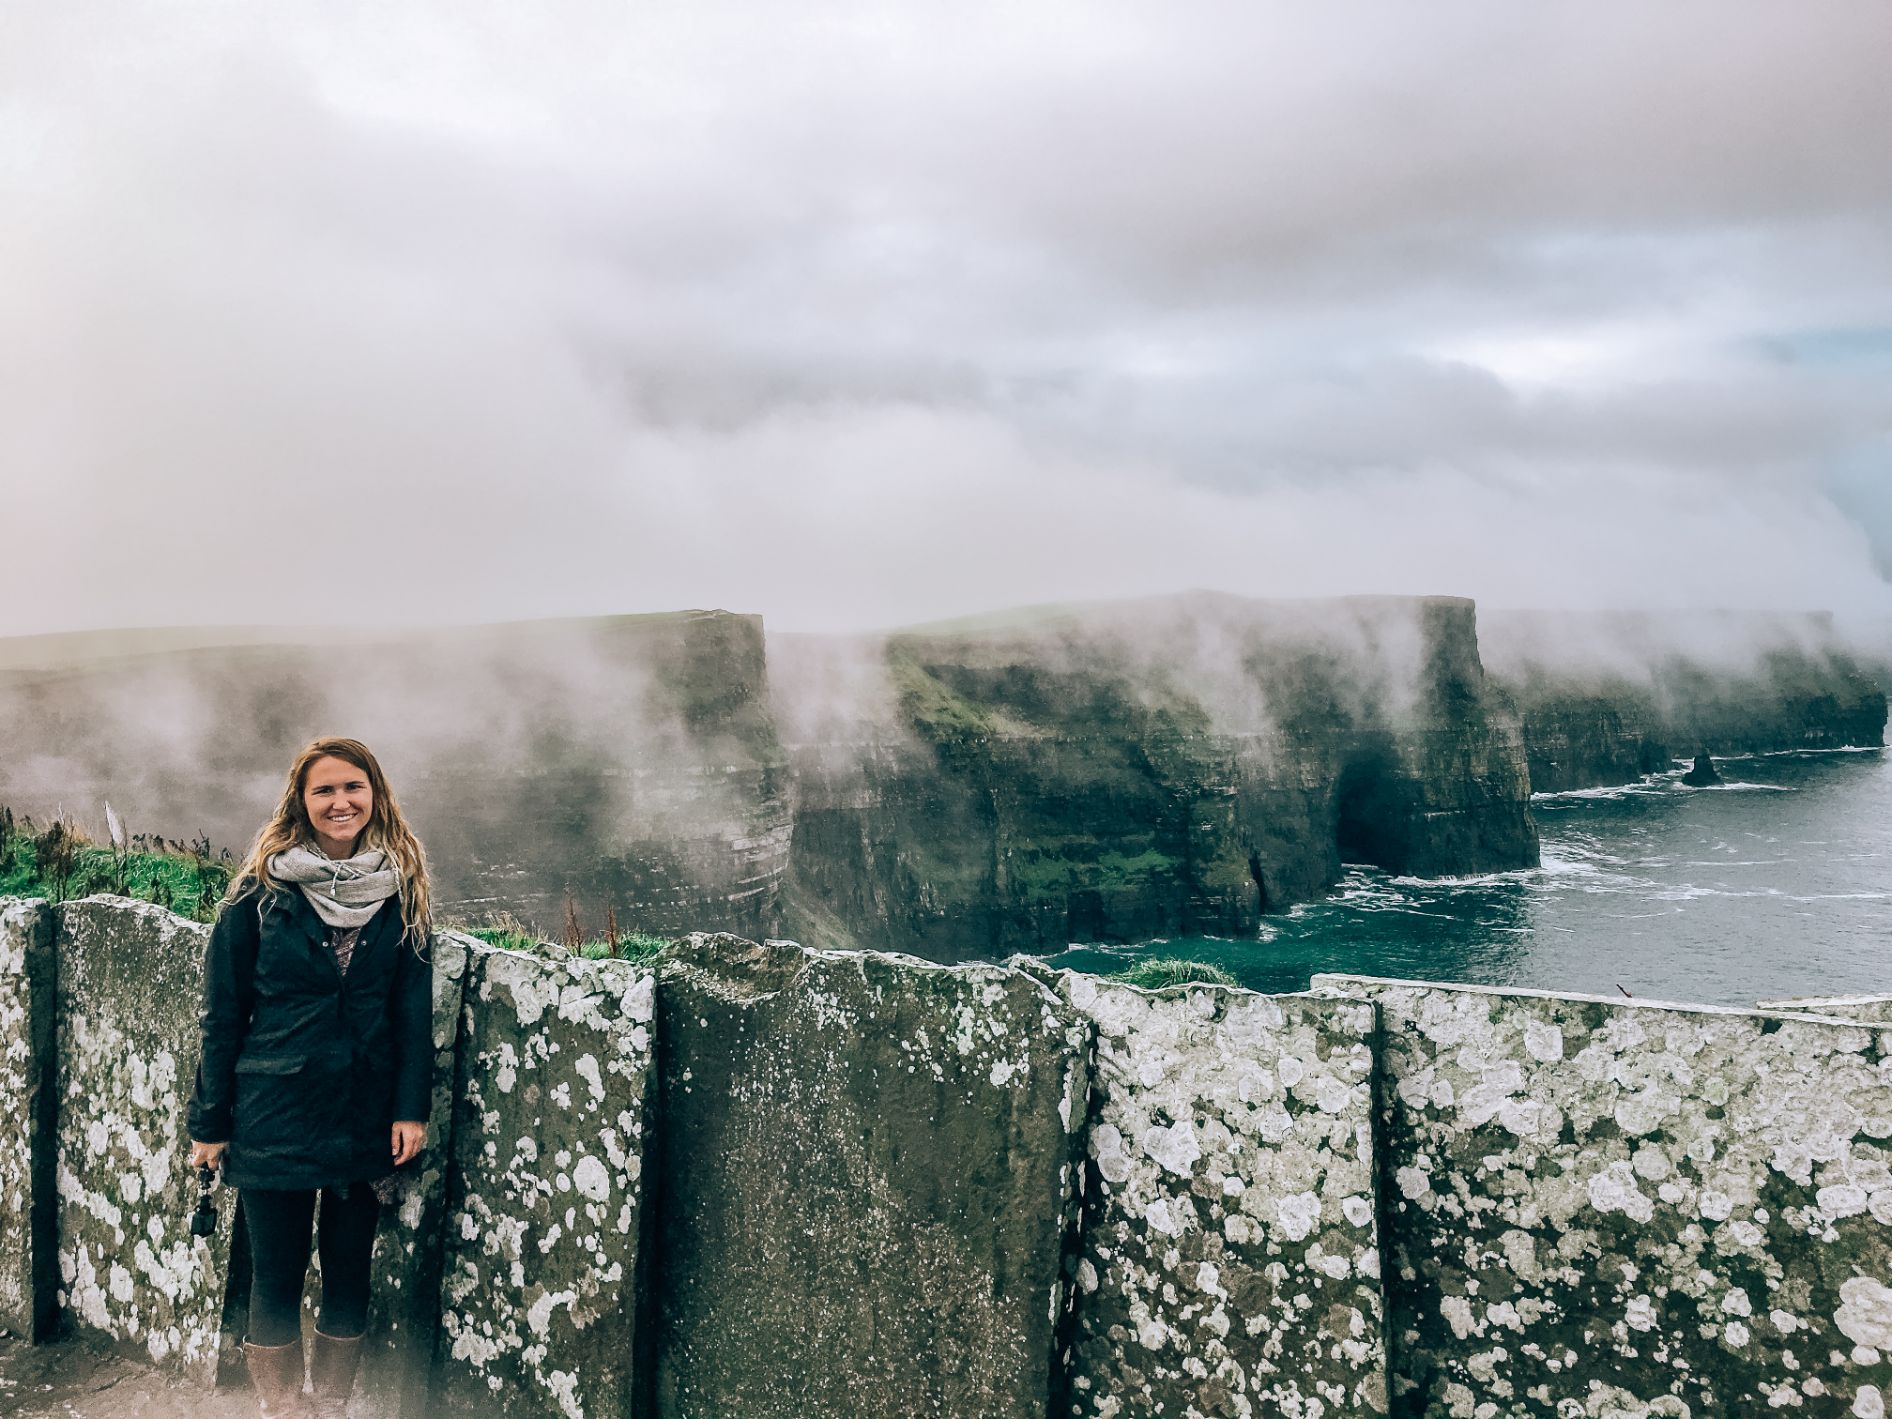 Hannah standing in front of stone wall with Cliffs of Moher in background. There is fog rolling in from the left to the right of the image towards the Atlantic Ocean